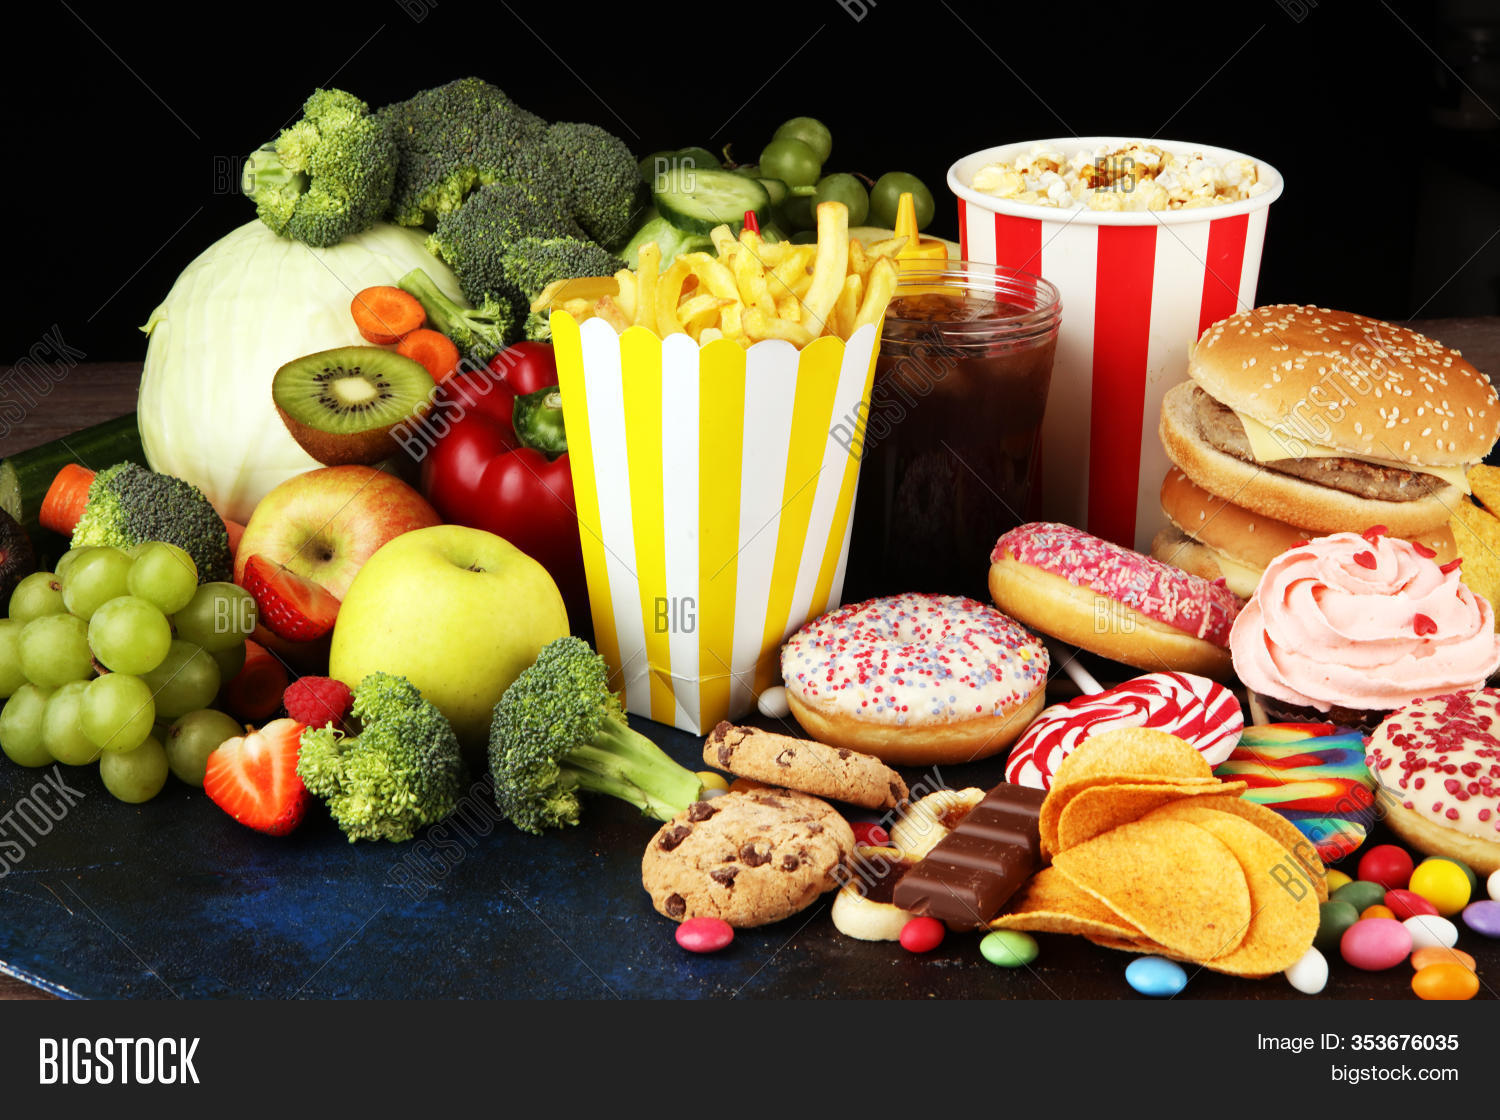 Healthy Unhealthy Food Image Amp Photo Free Trial